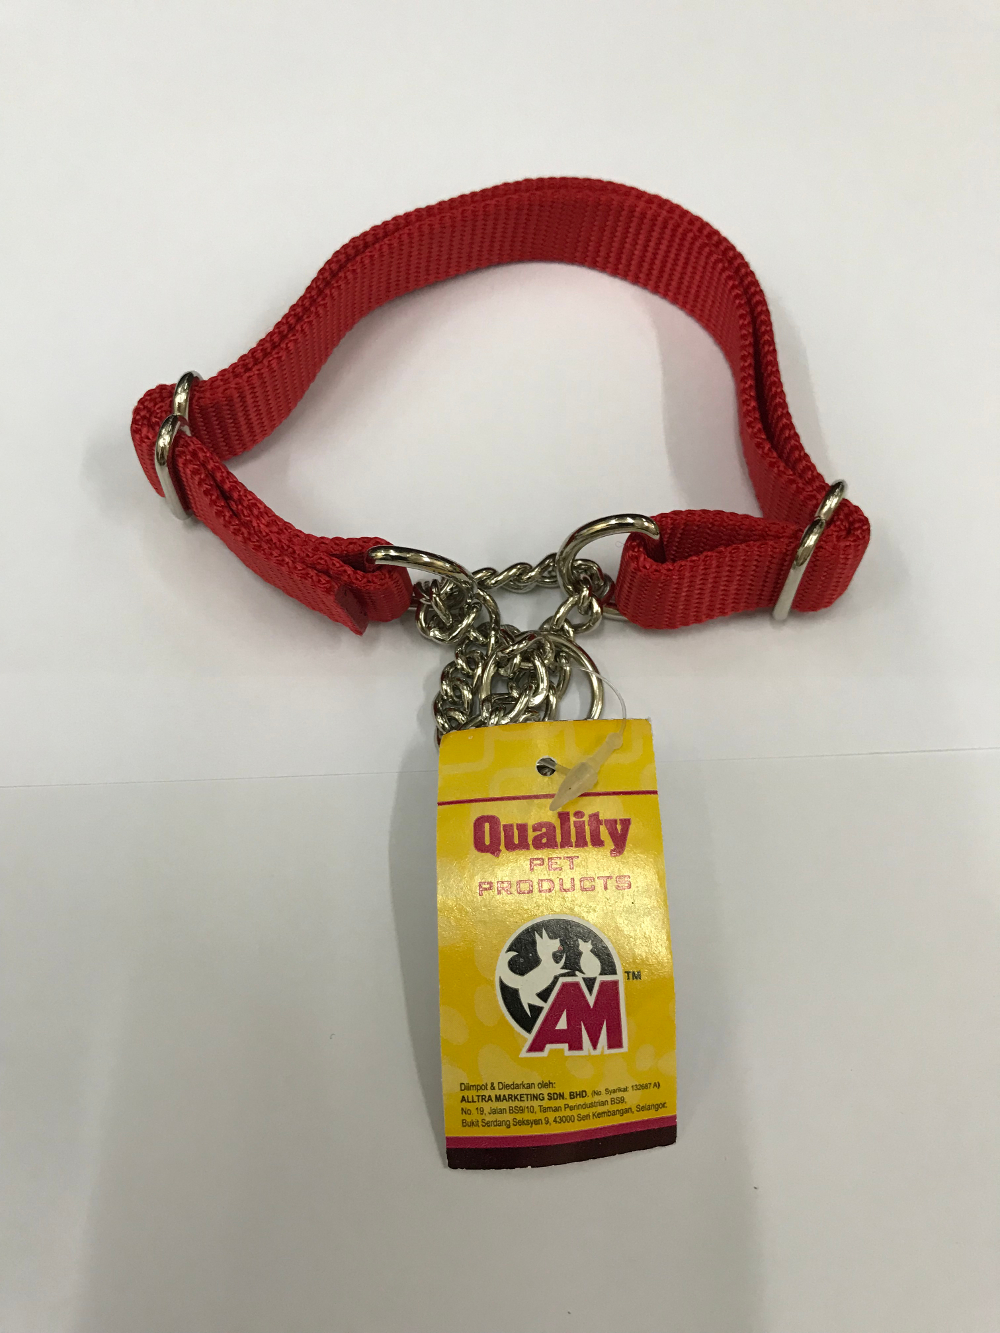 Nylon Training Chain for Small Dog 15mm 10in to 18in Red